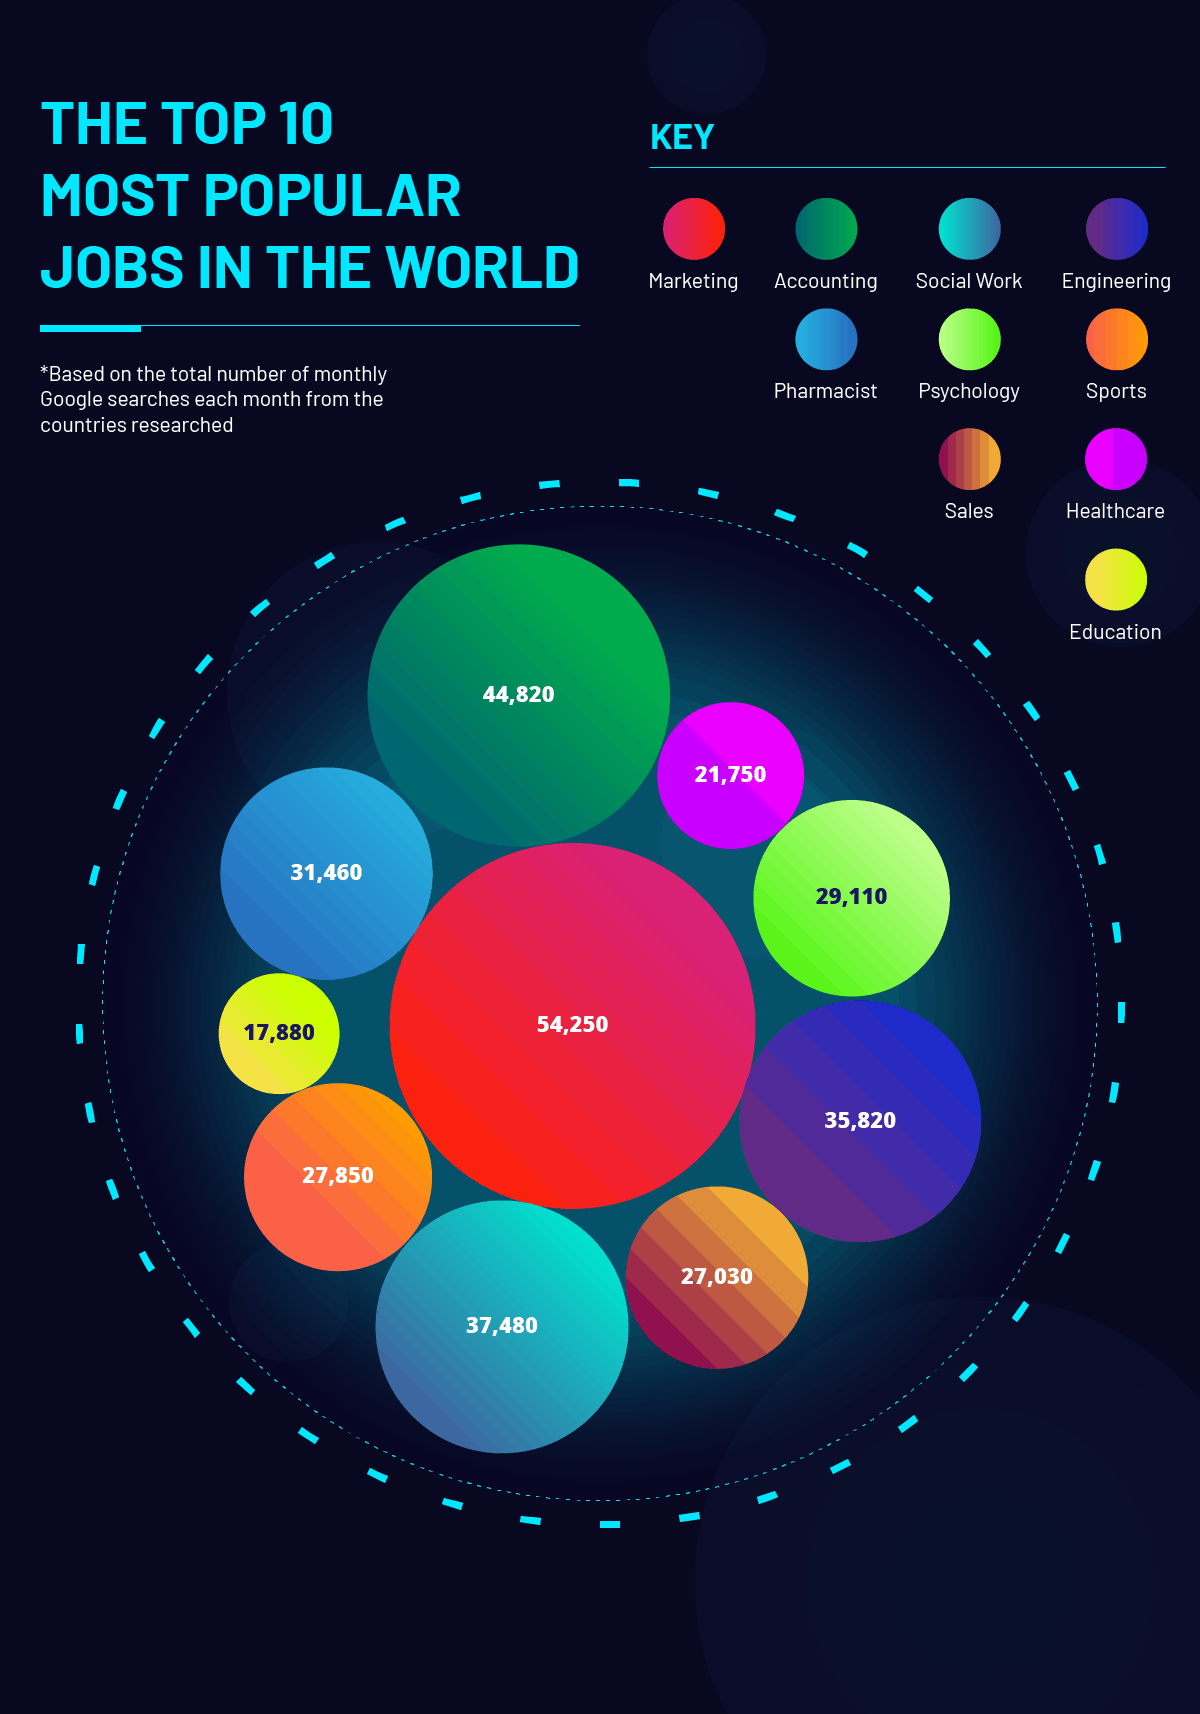 Top 10 Most Popular Jobs In the World